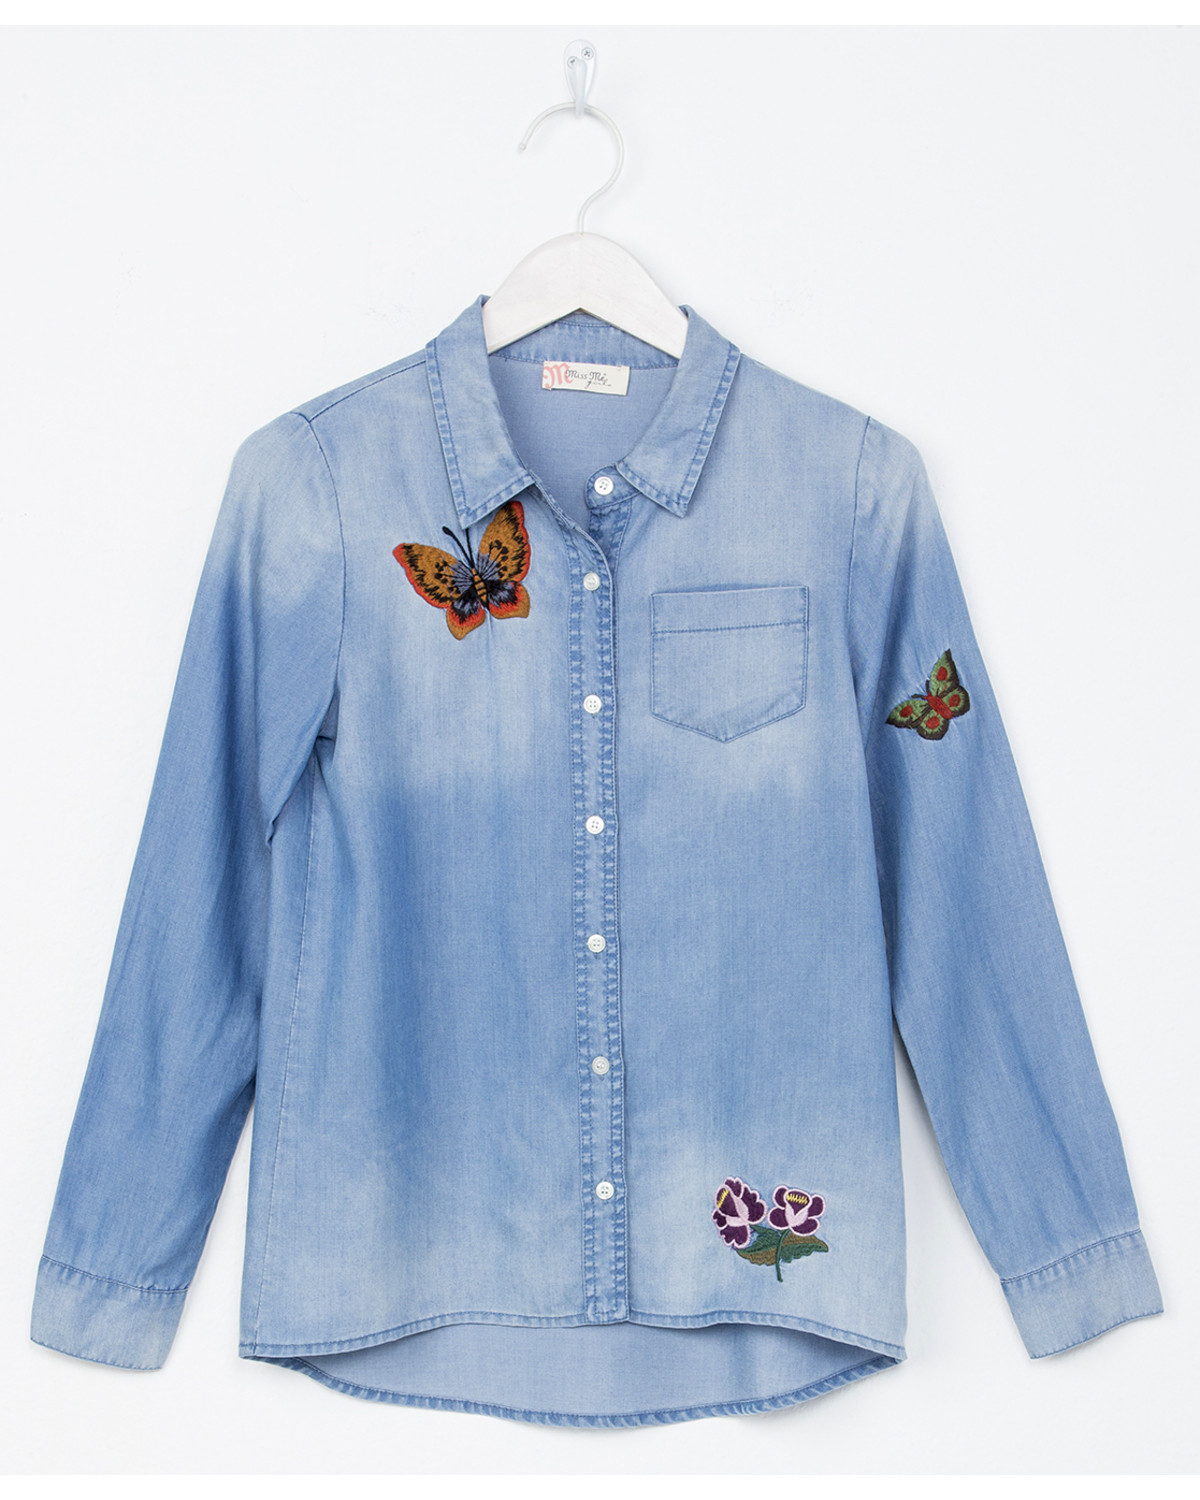 Miss Me Girls Indigo Butterfly Embroidery Denim Shirt Boot Barn